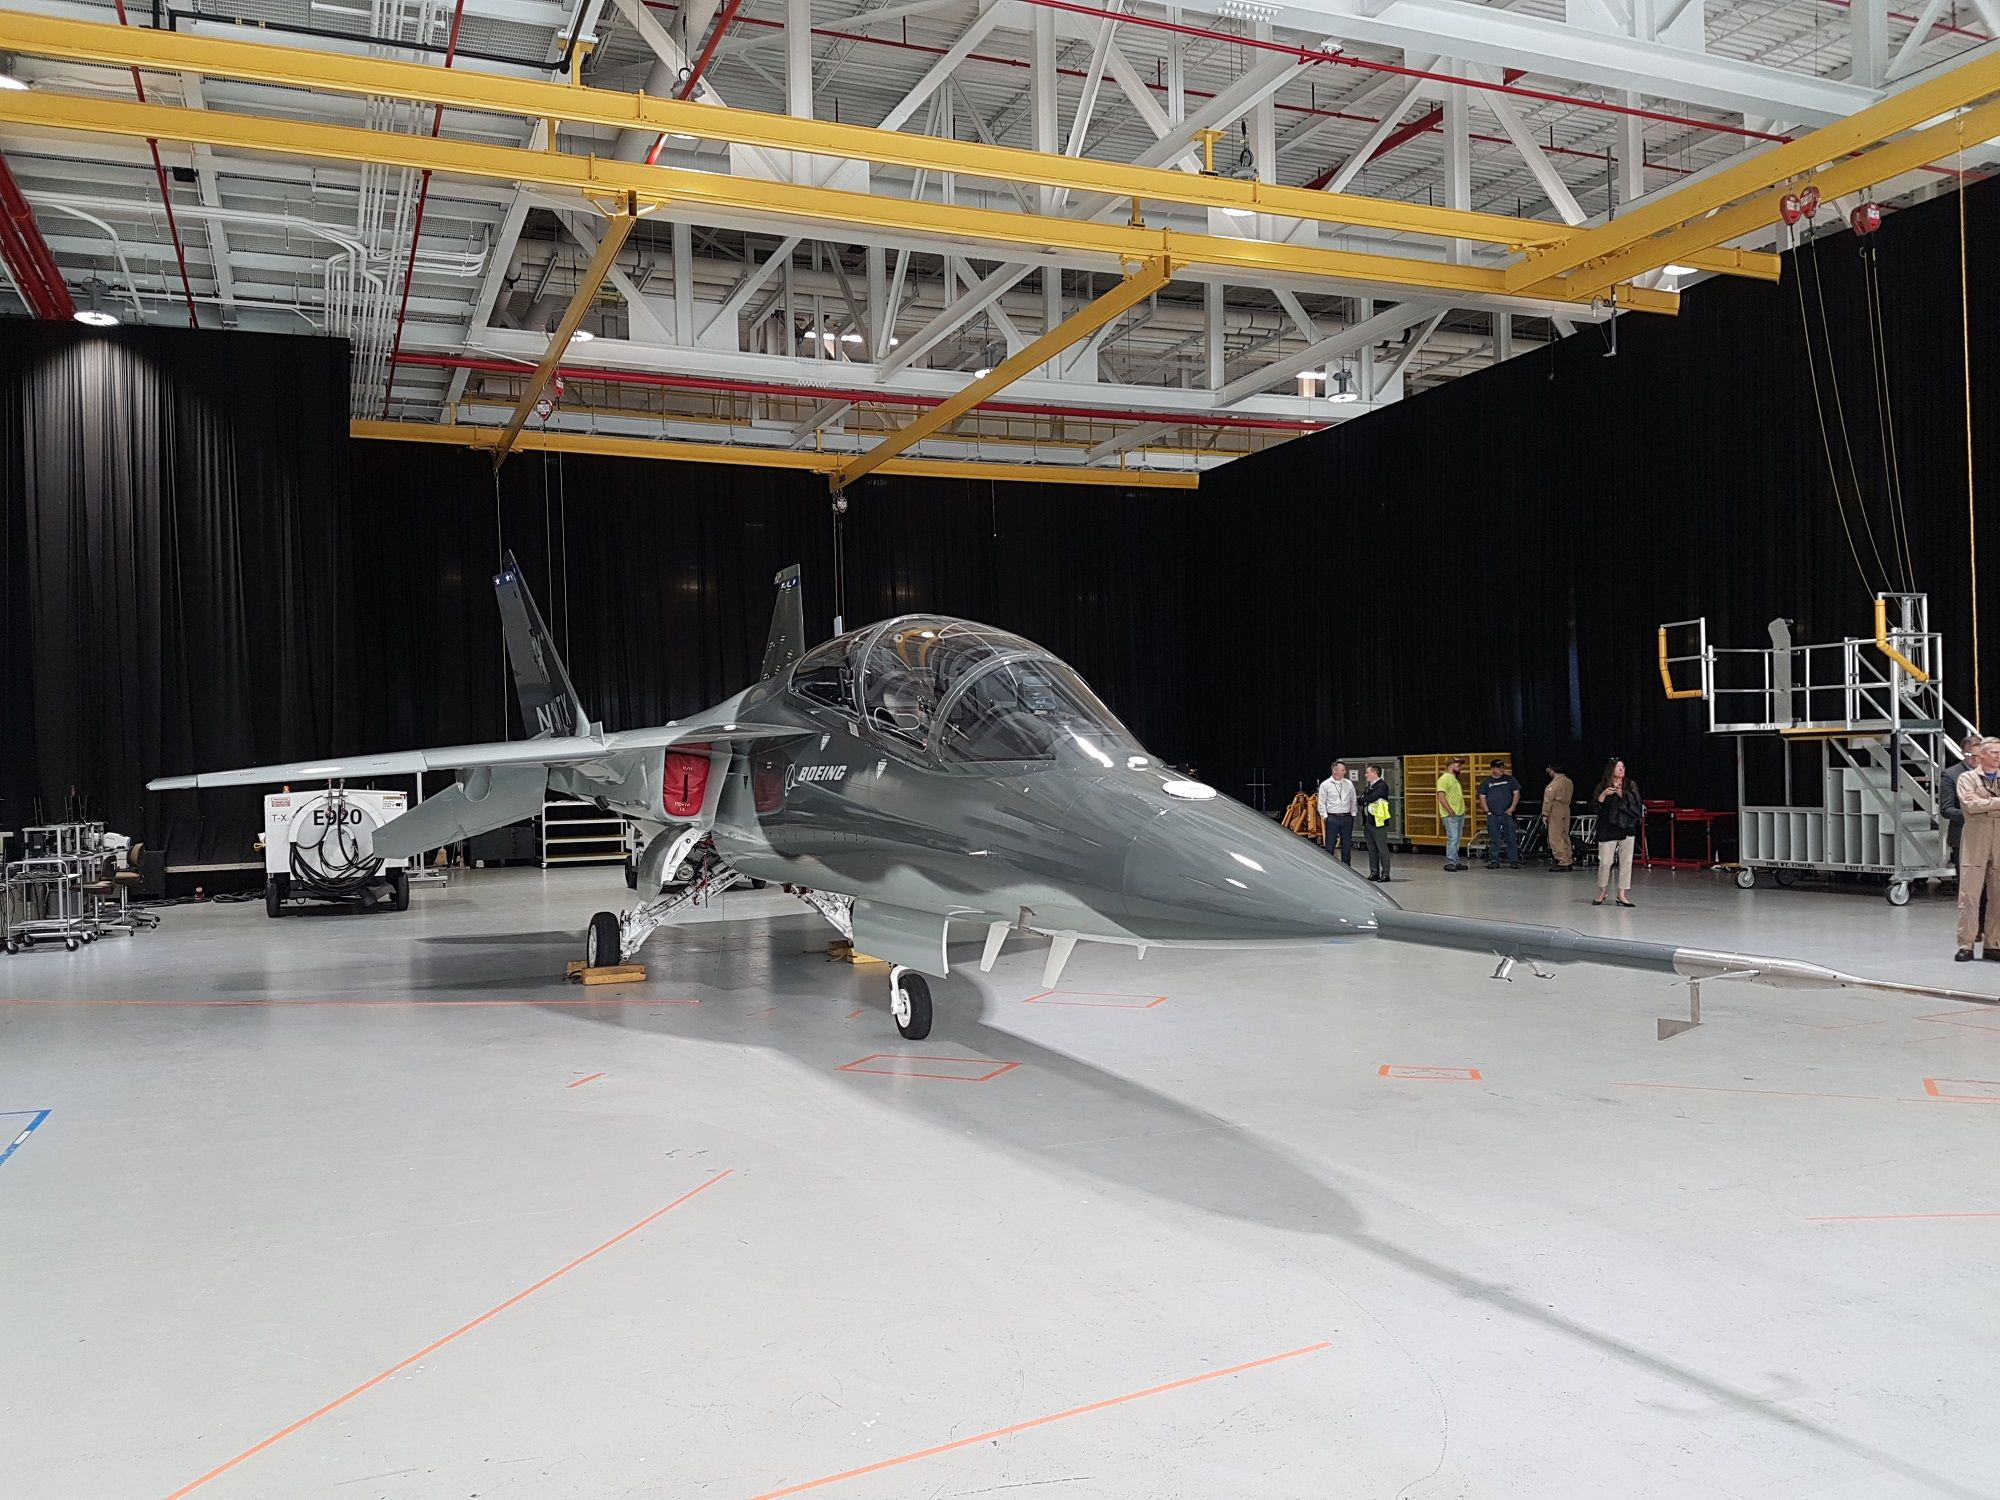 Boeing T-X is the military training aircraft intended for use by future US Air Force pilots. It is set to replace the T-38 TALON, which has been in service since 1961.Safran Electrical & Power will provide theAuxiliary Power System for the aircraft via Saab. (Photo: DPM)